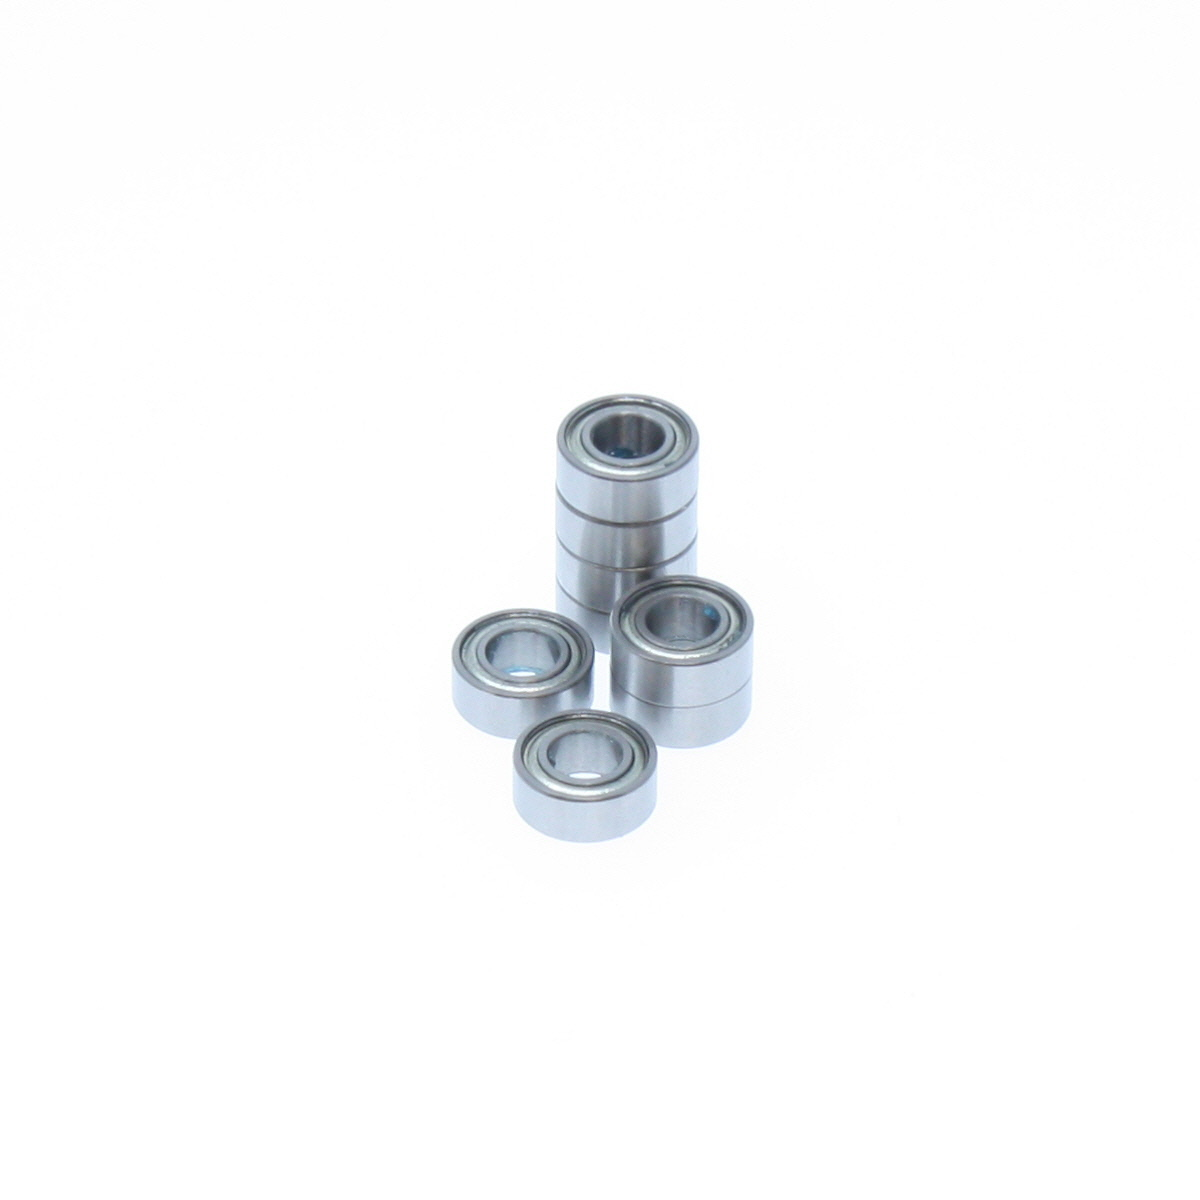 5*10*4mm ball bearing (8pcs)